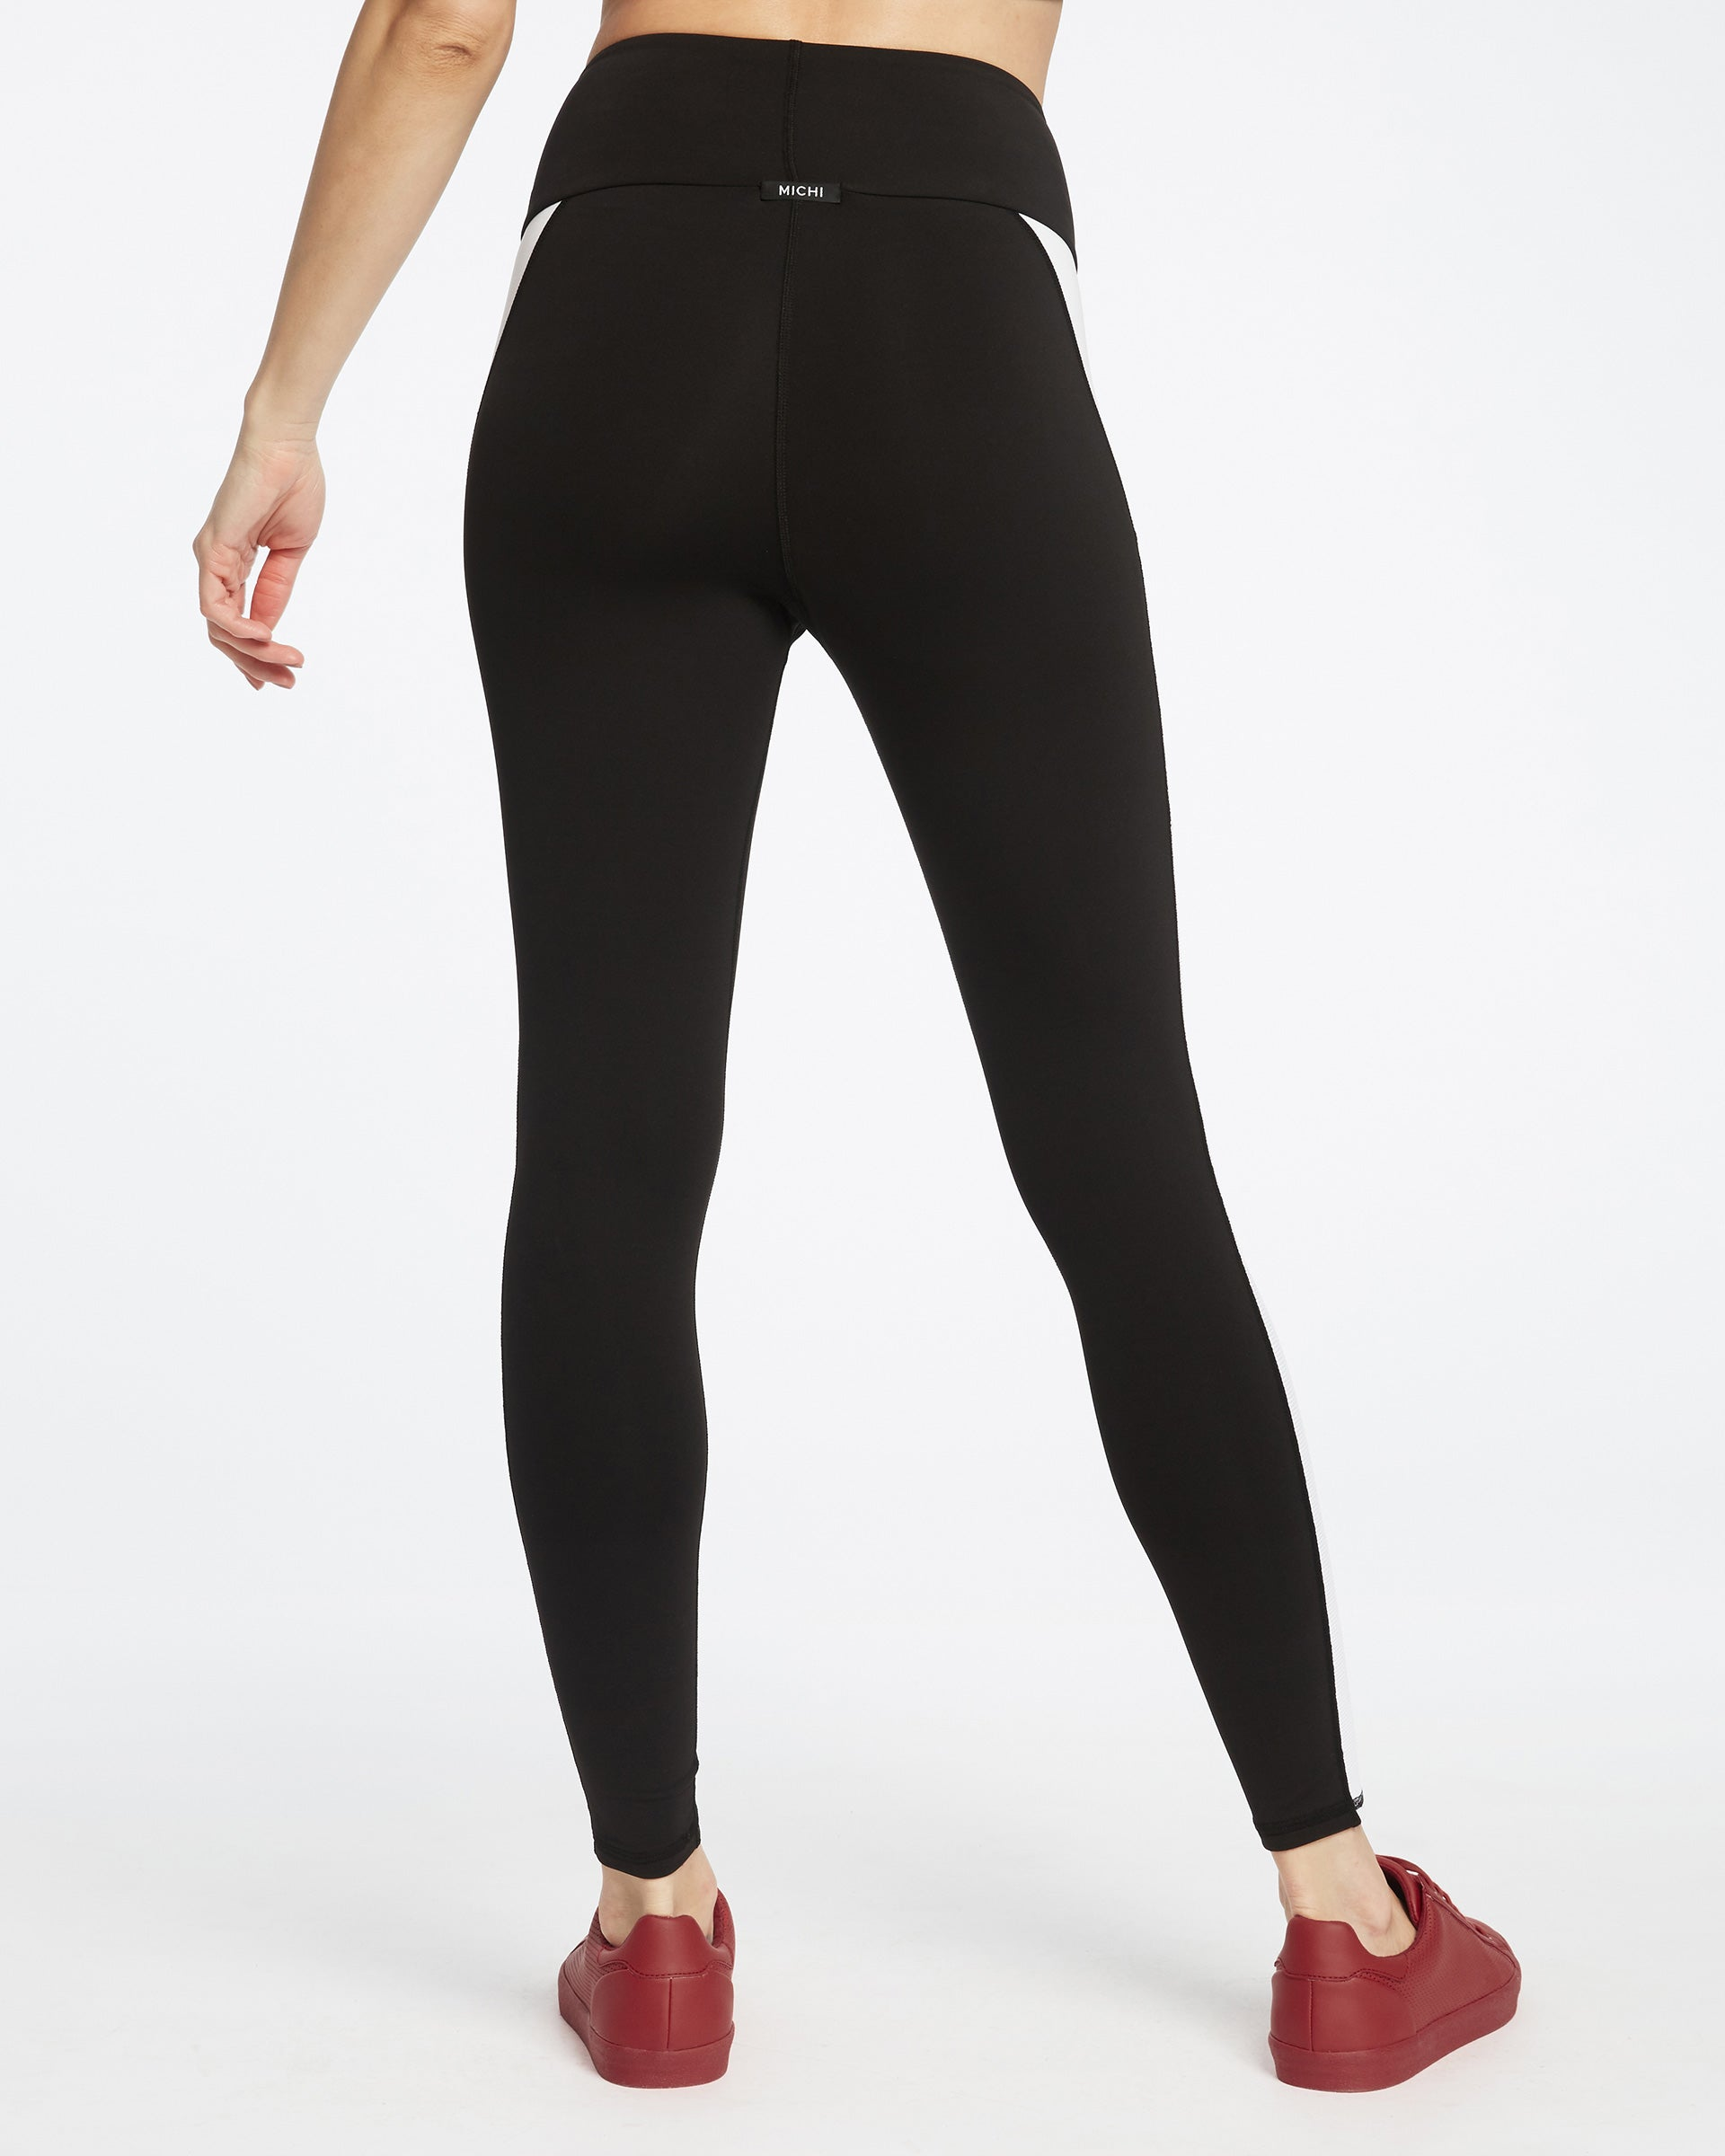 gradient-pocket-legging-black-white-wine